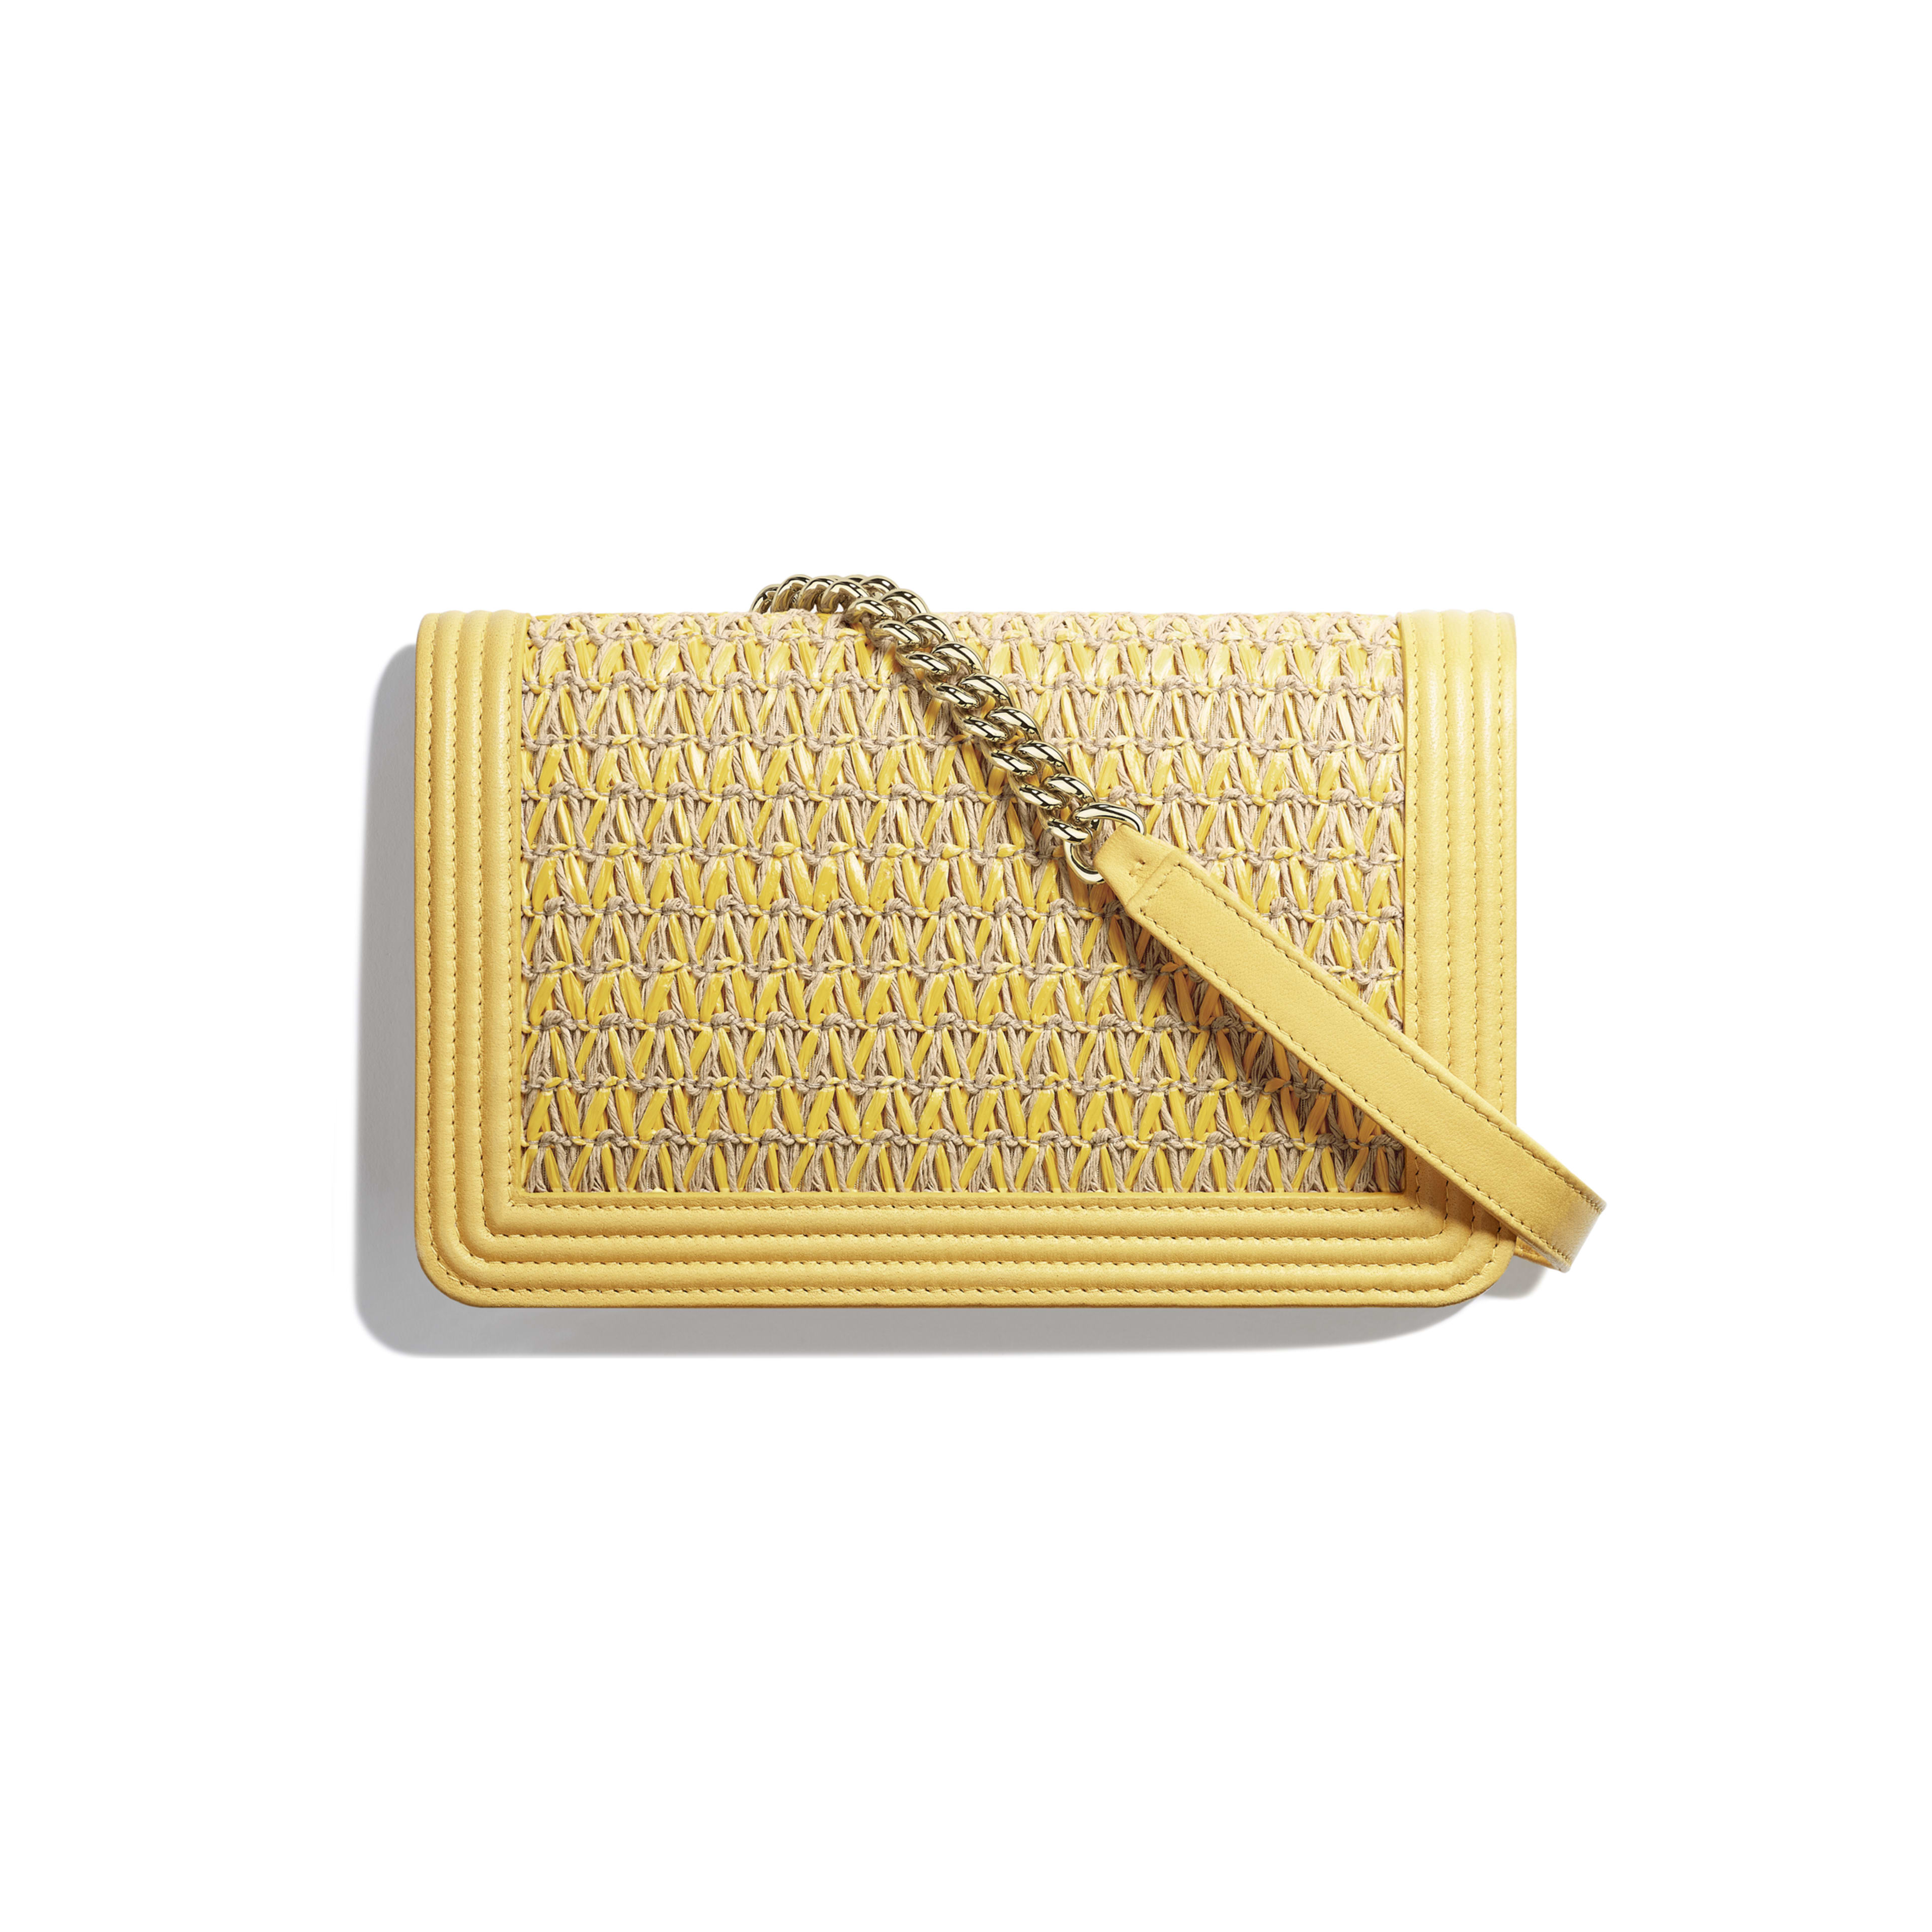 BOY CHANEL Wallet on Chain - Yellow & Beige - Cotton, Lambskin & Gold-Tone Metal - Alternative view - see full sized version